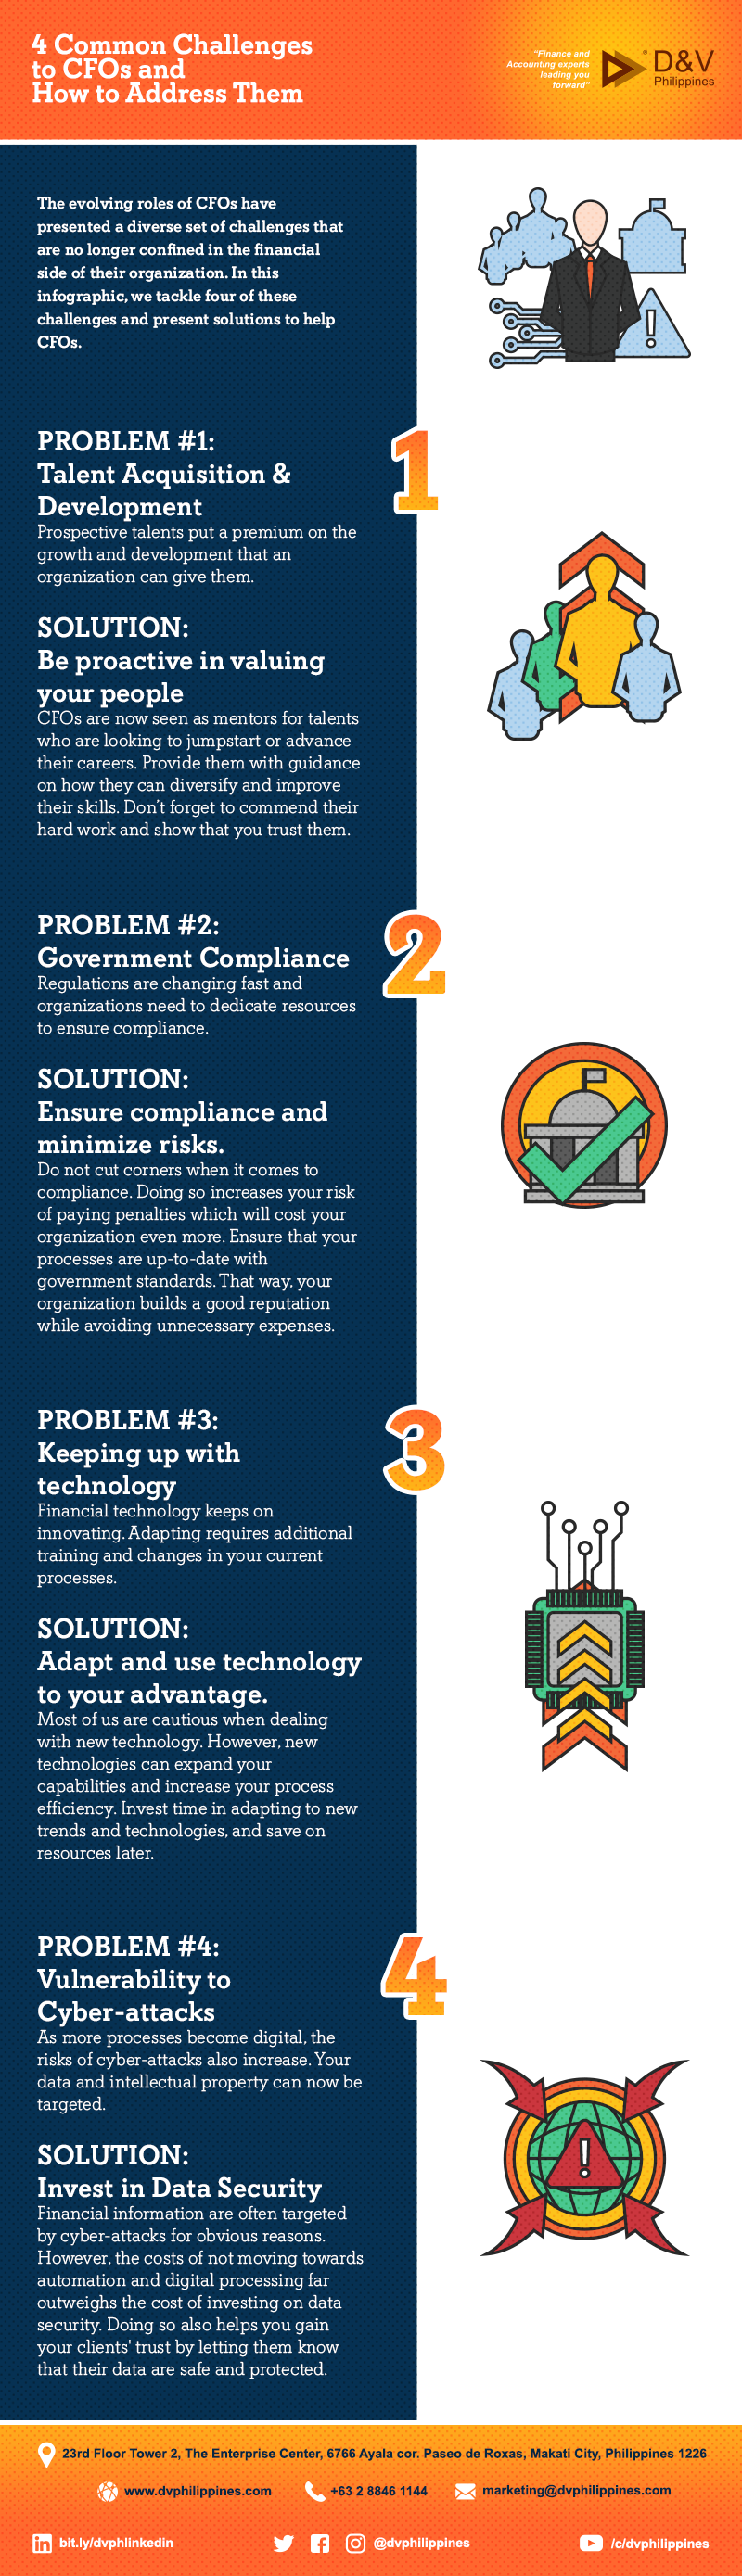 Infograpihcs_4-Common-Challenges-to-CFOs-and-How-to-Address-Them_Main